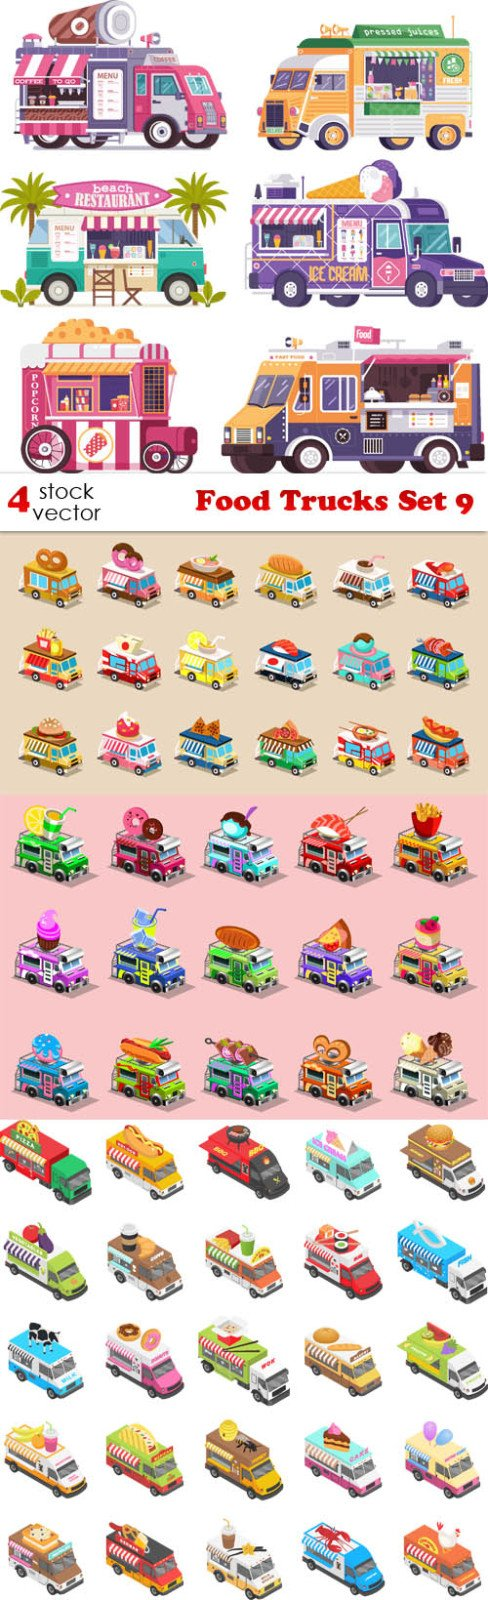 Vectors - Food Trucks Set 9